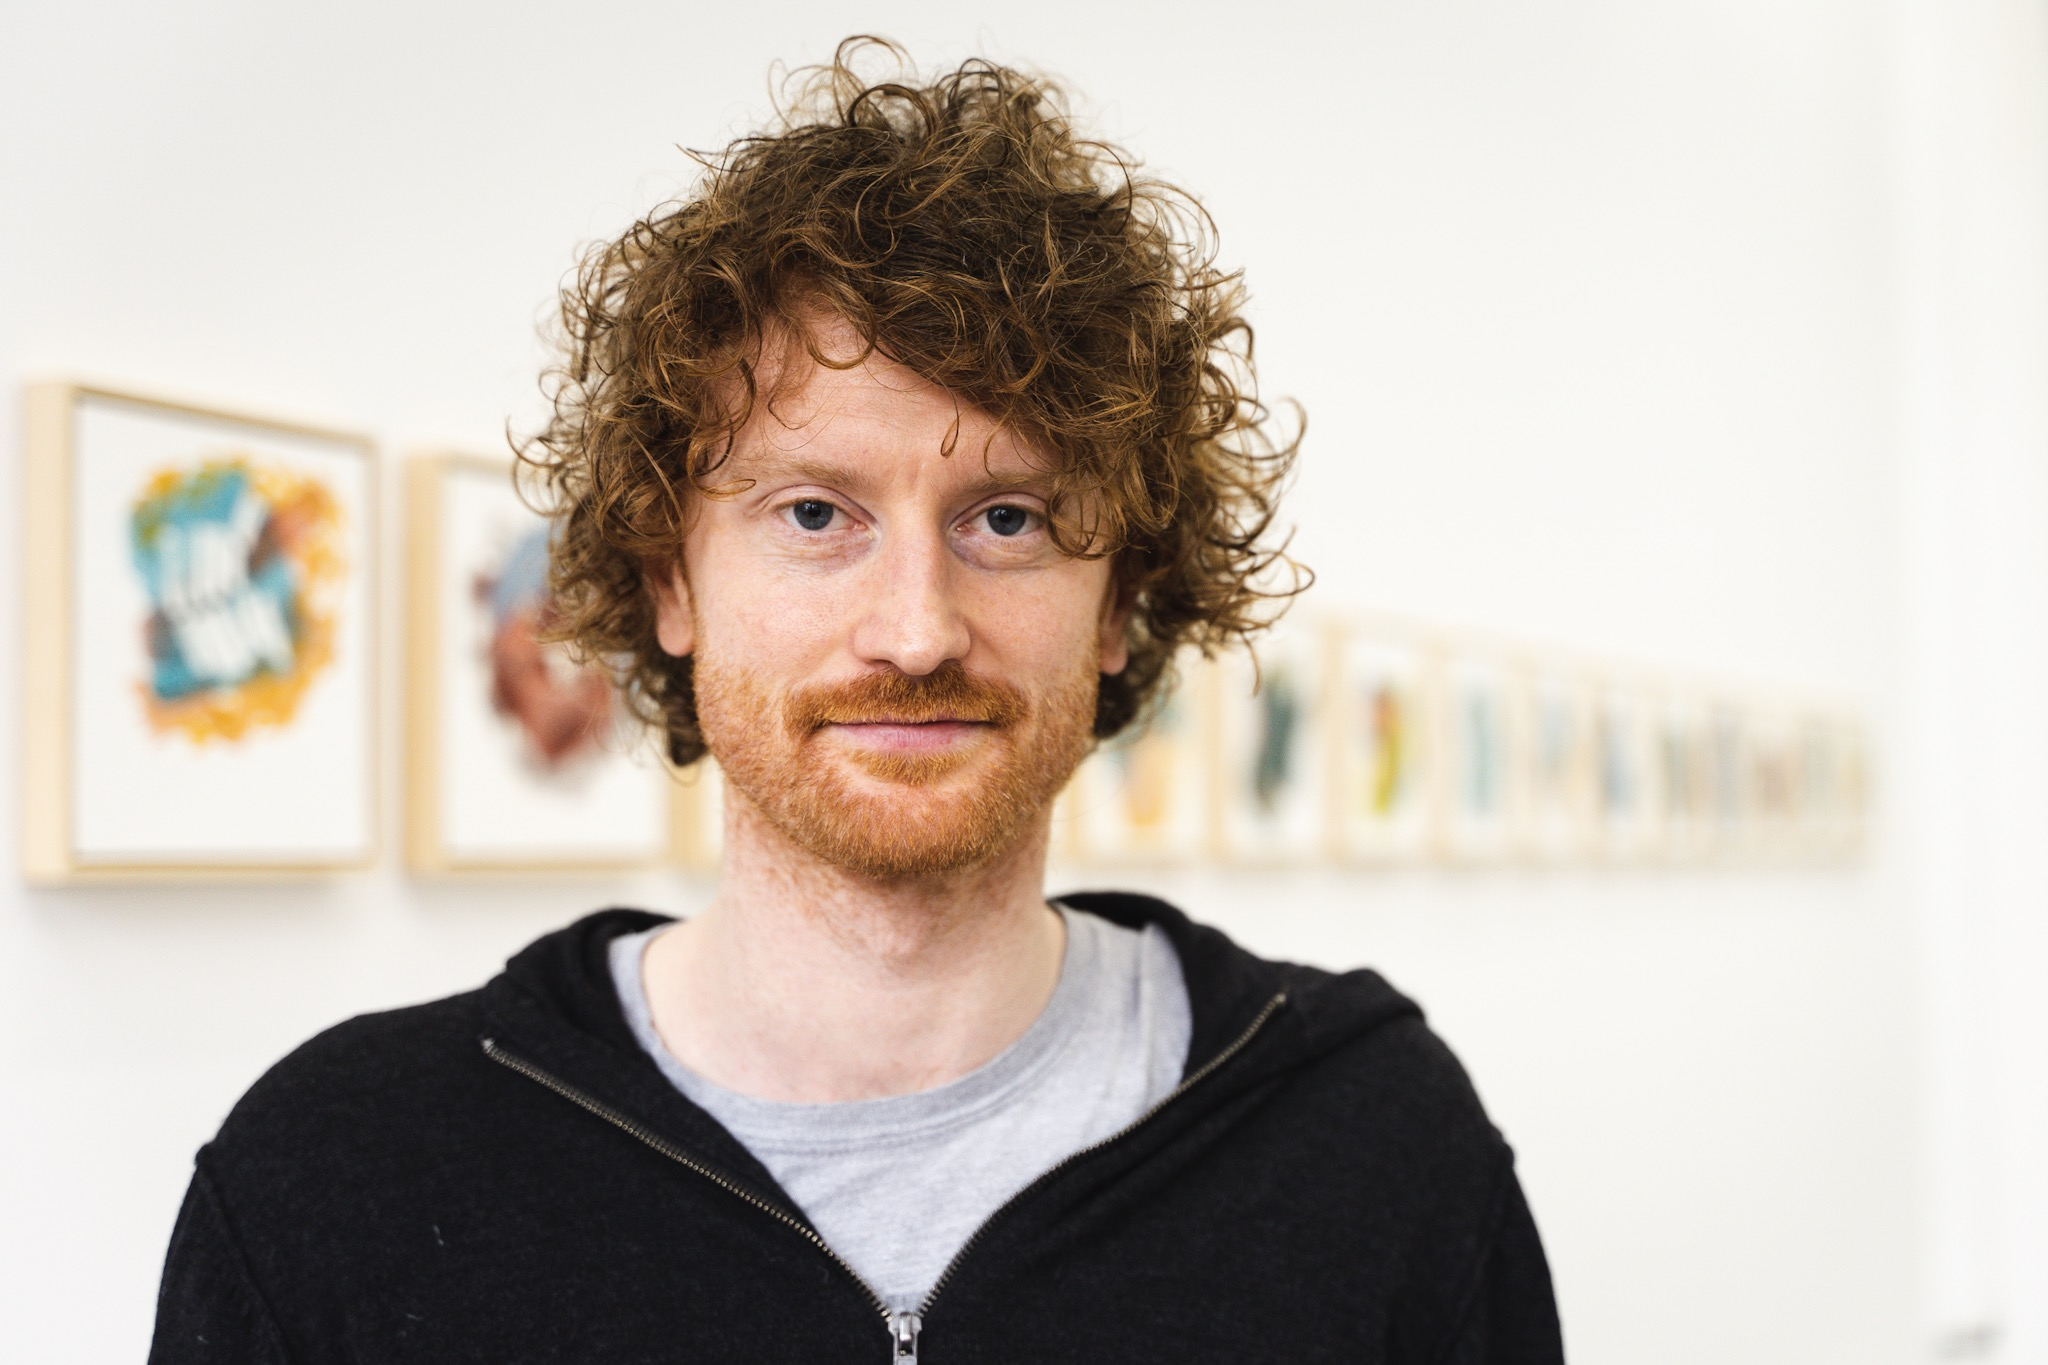 Man with curly ginger hair